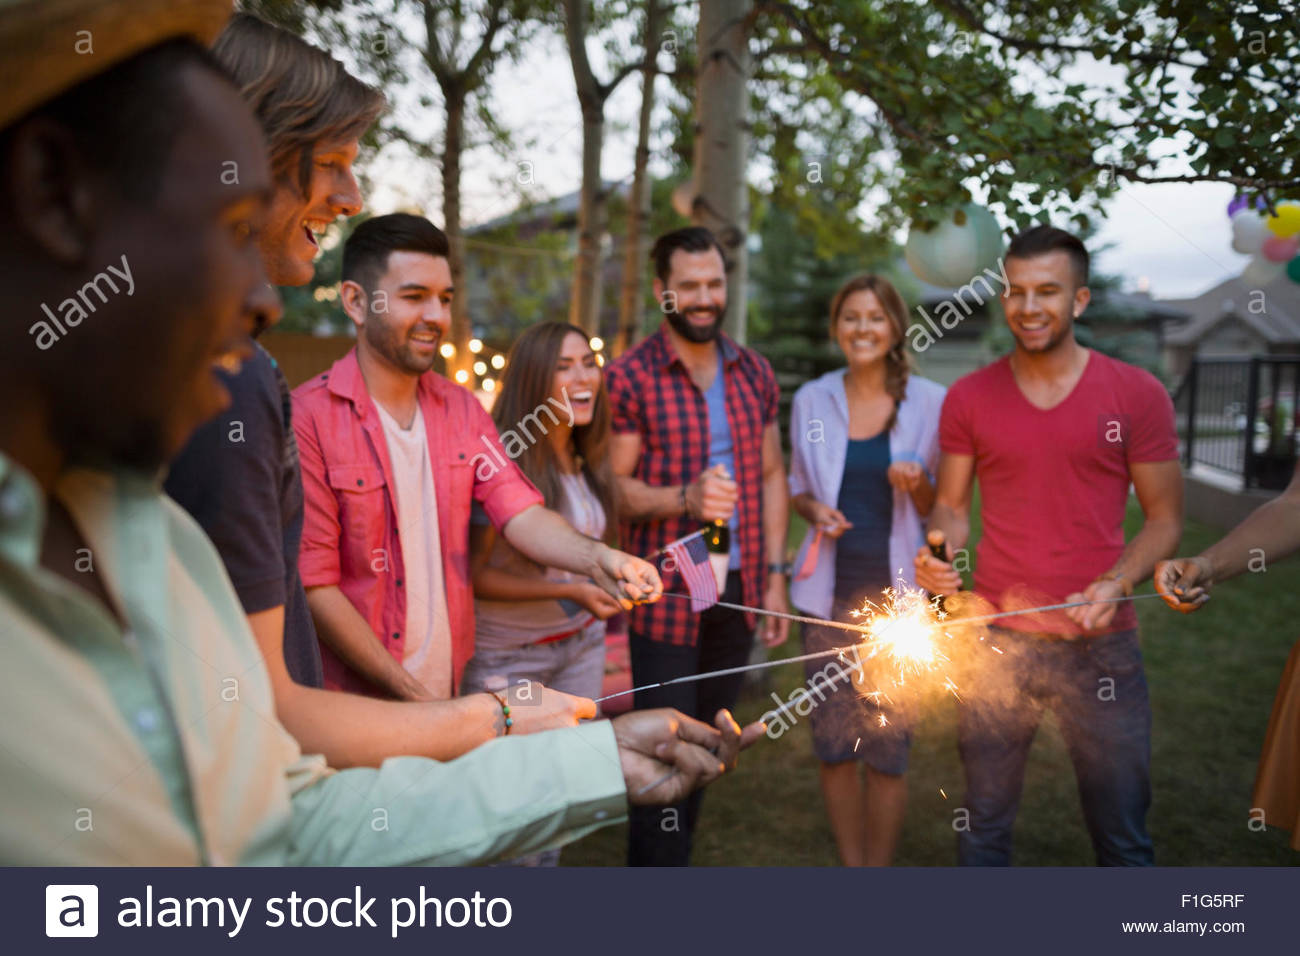 Friends lighting sparklers backyard 4th of July party - Stock Image